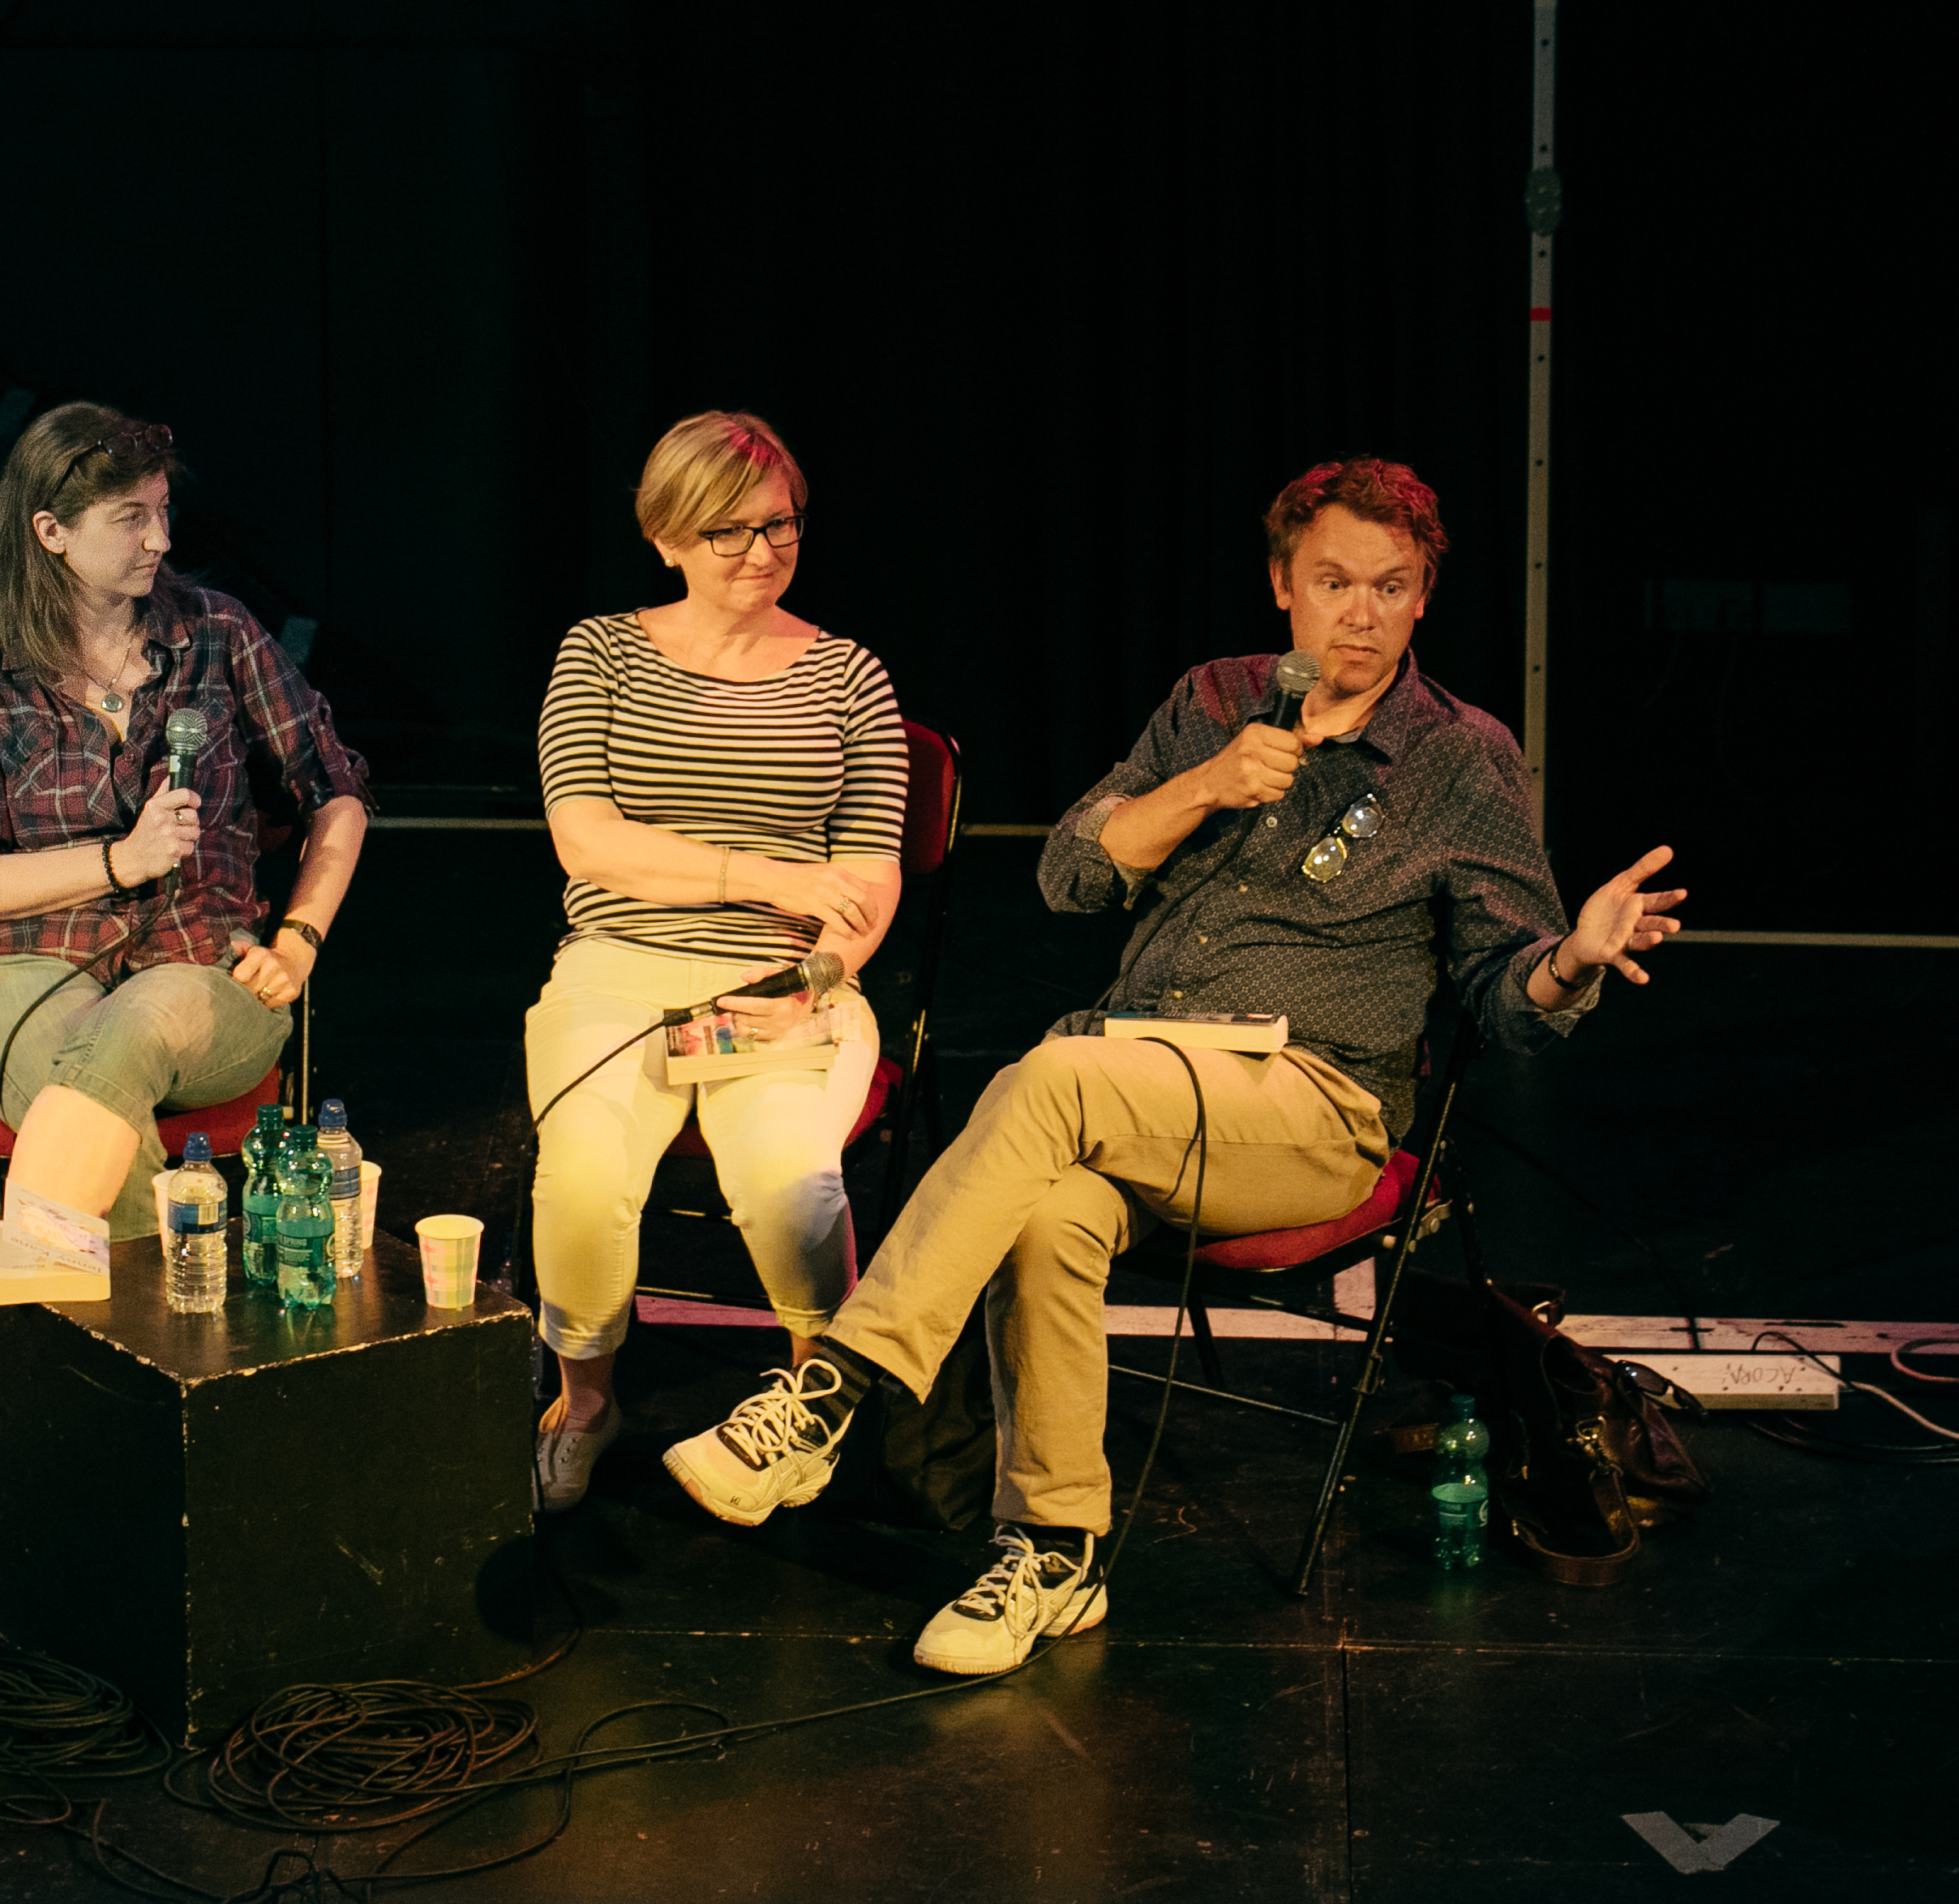 Chris Vick appearing at Penzance Literary Festival, July 2017